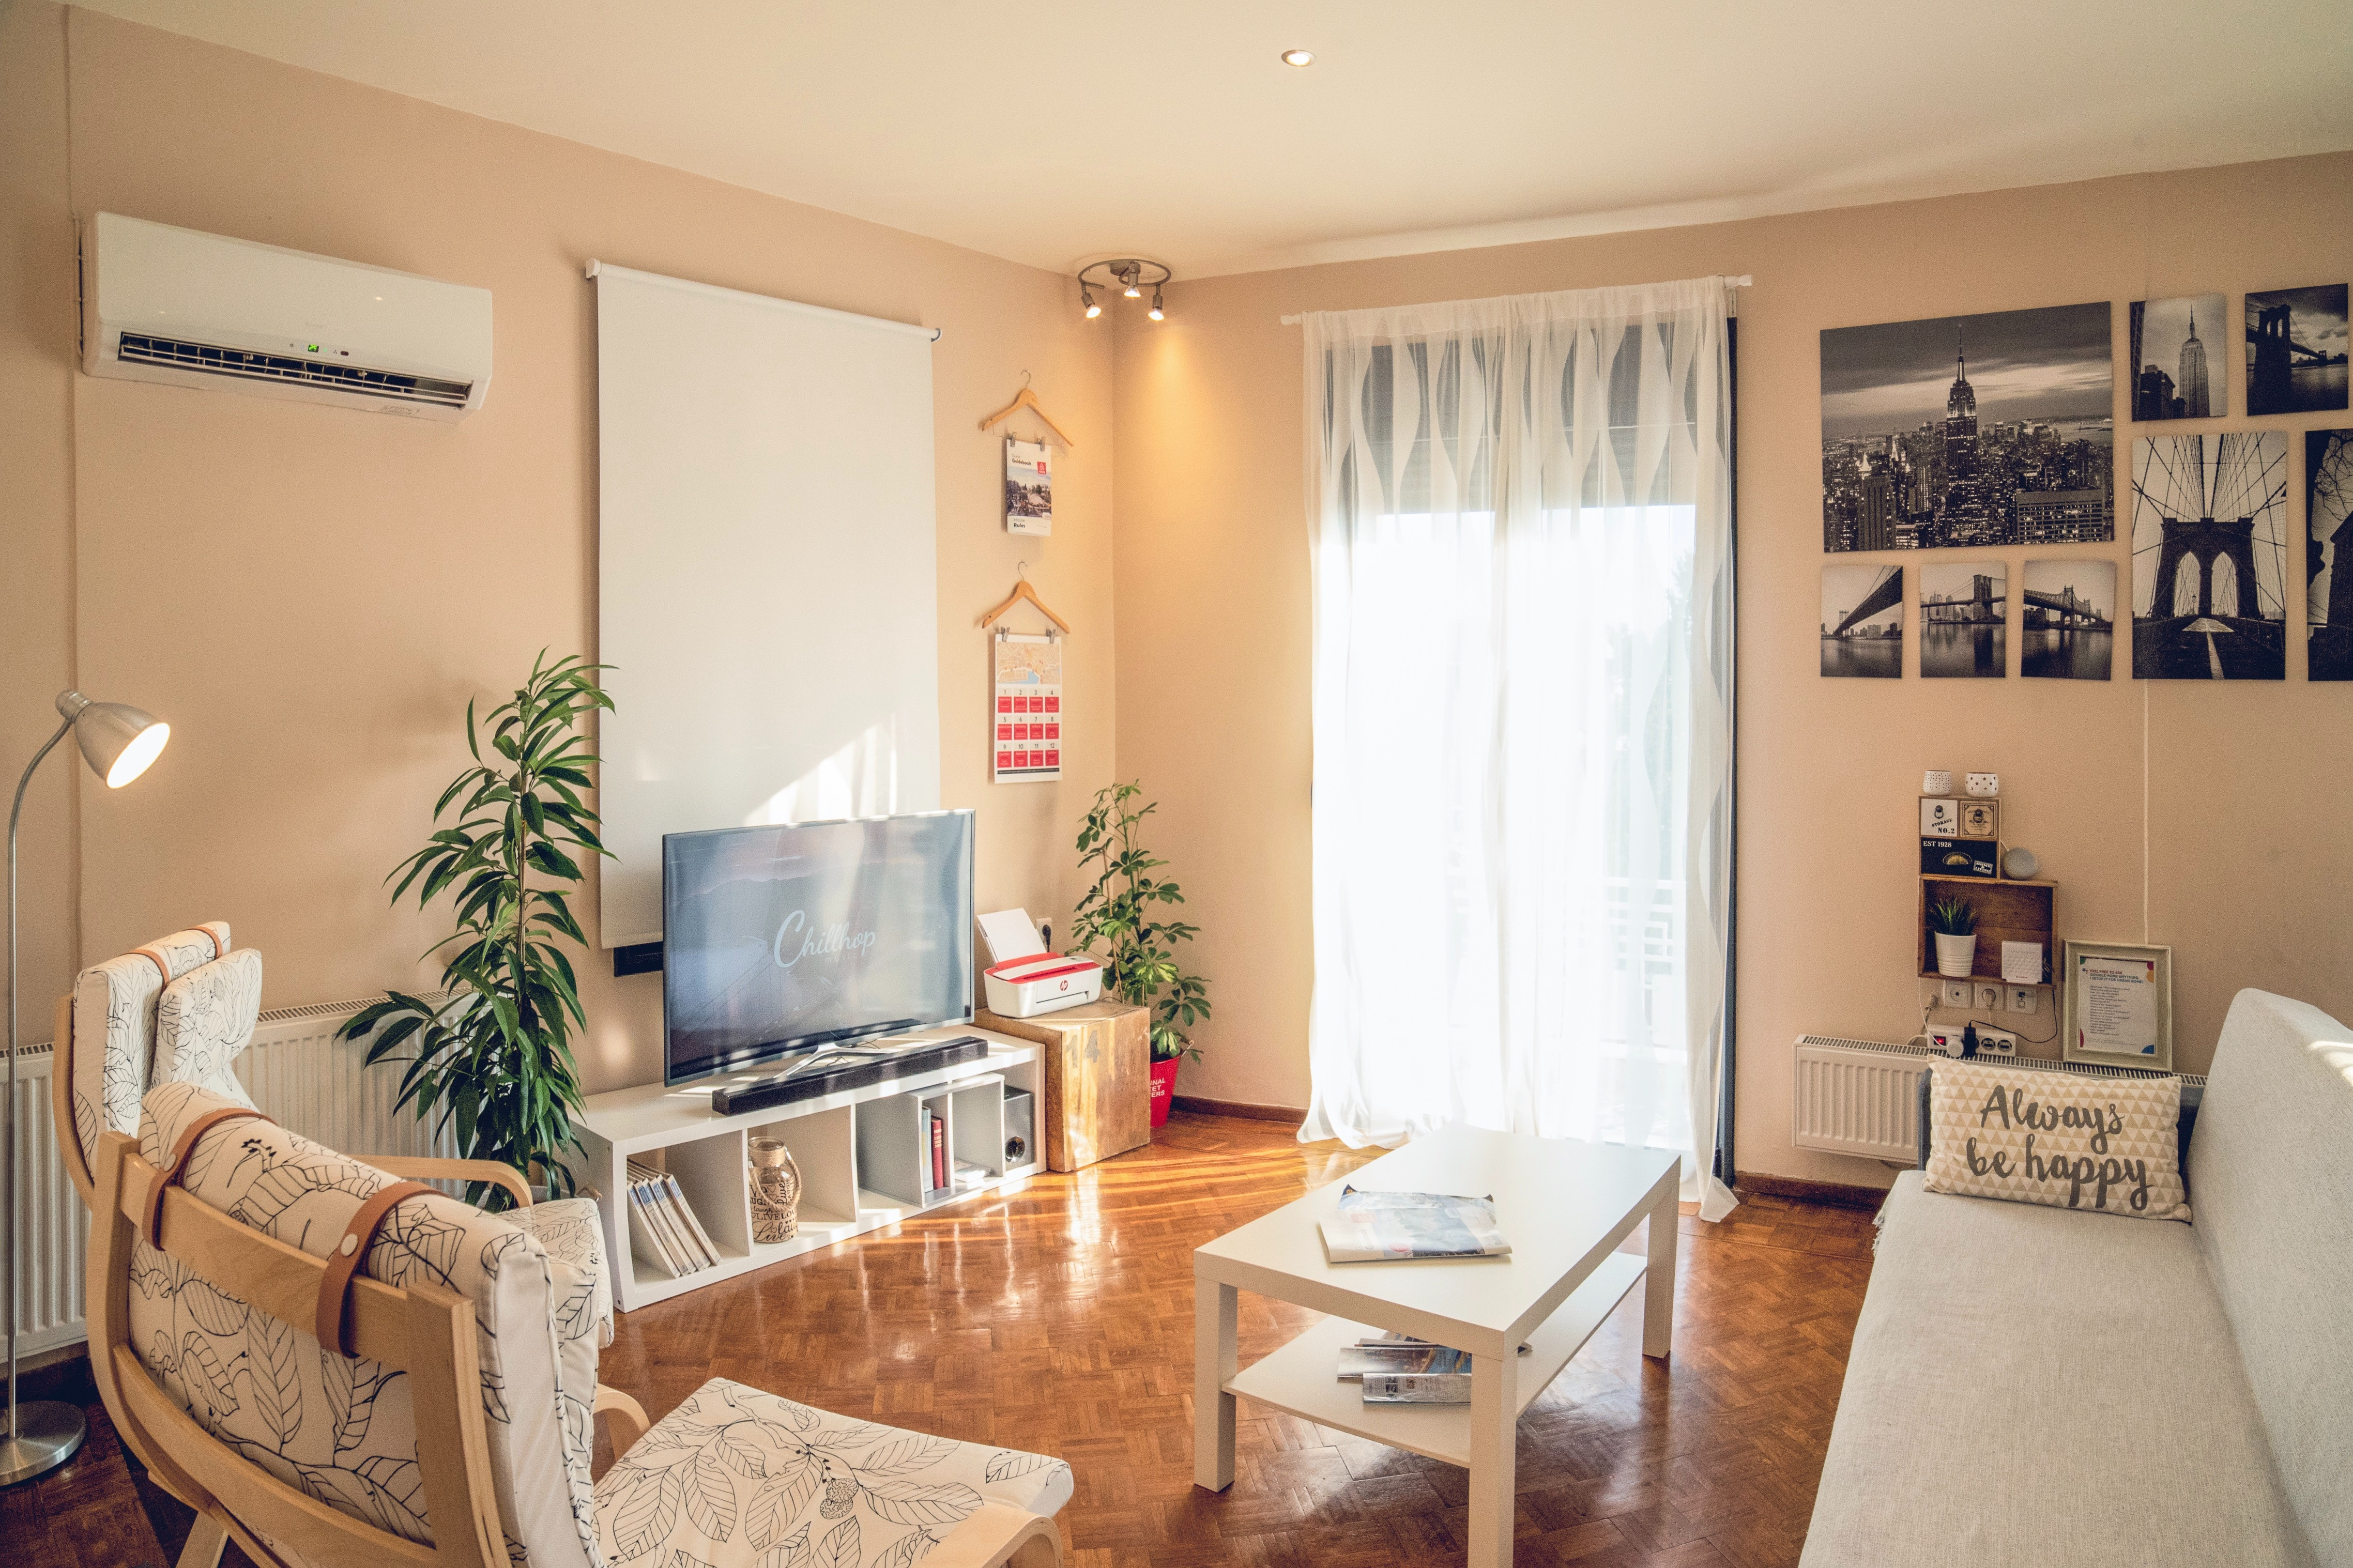 Rent Out your House on Airbnb: 4 Steps to Start a Airbnb